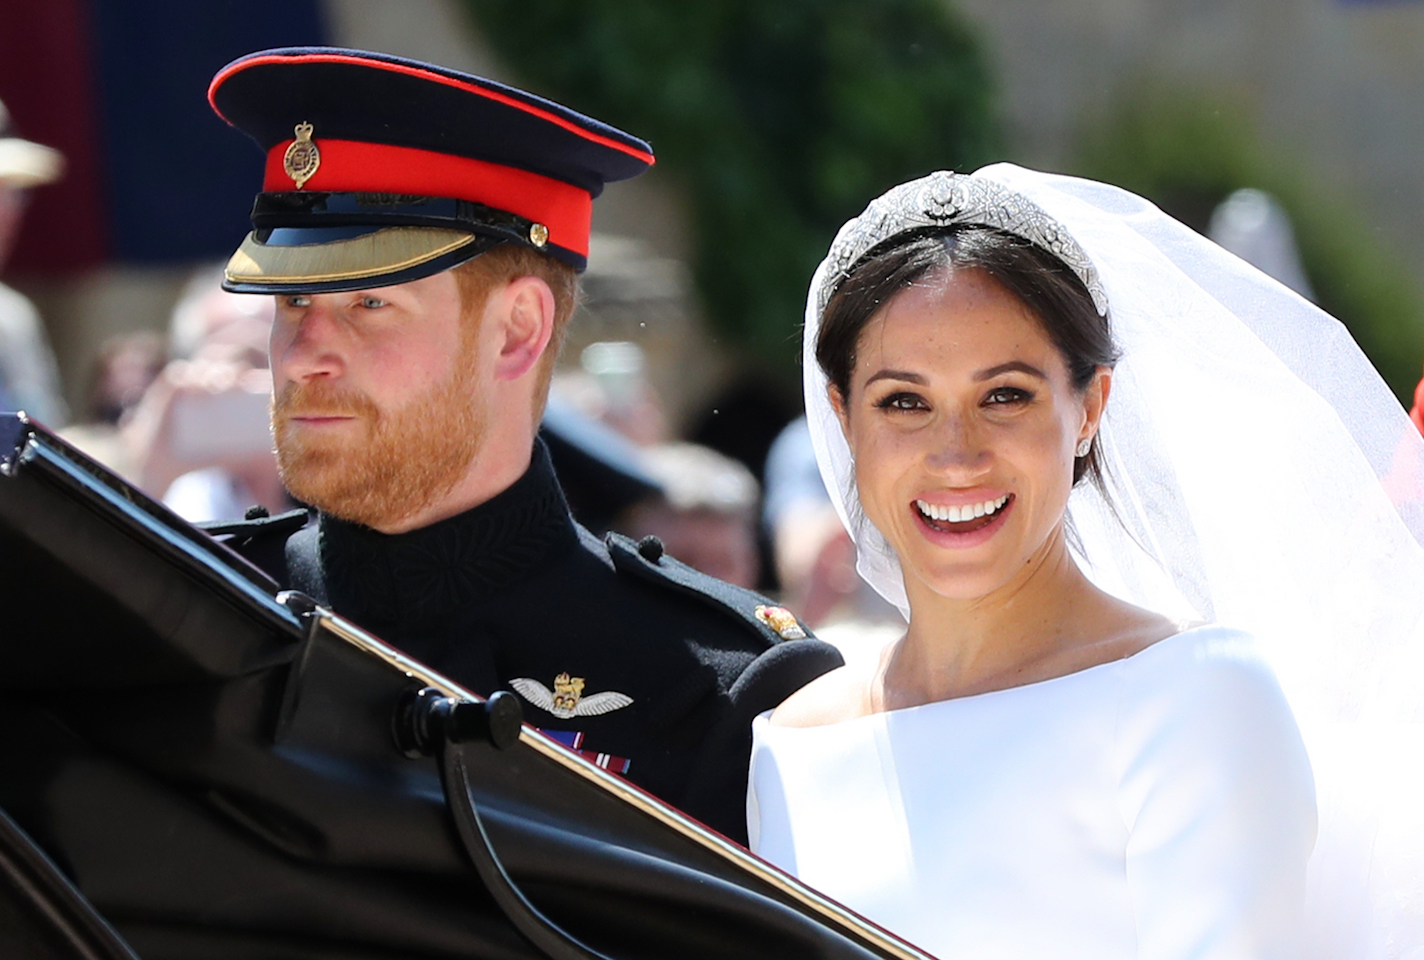 Prince Harry's wedding beard with Meghan Markle in car